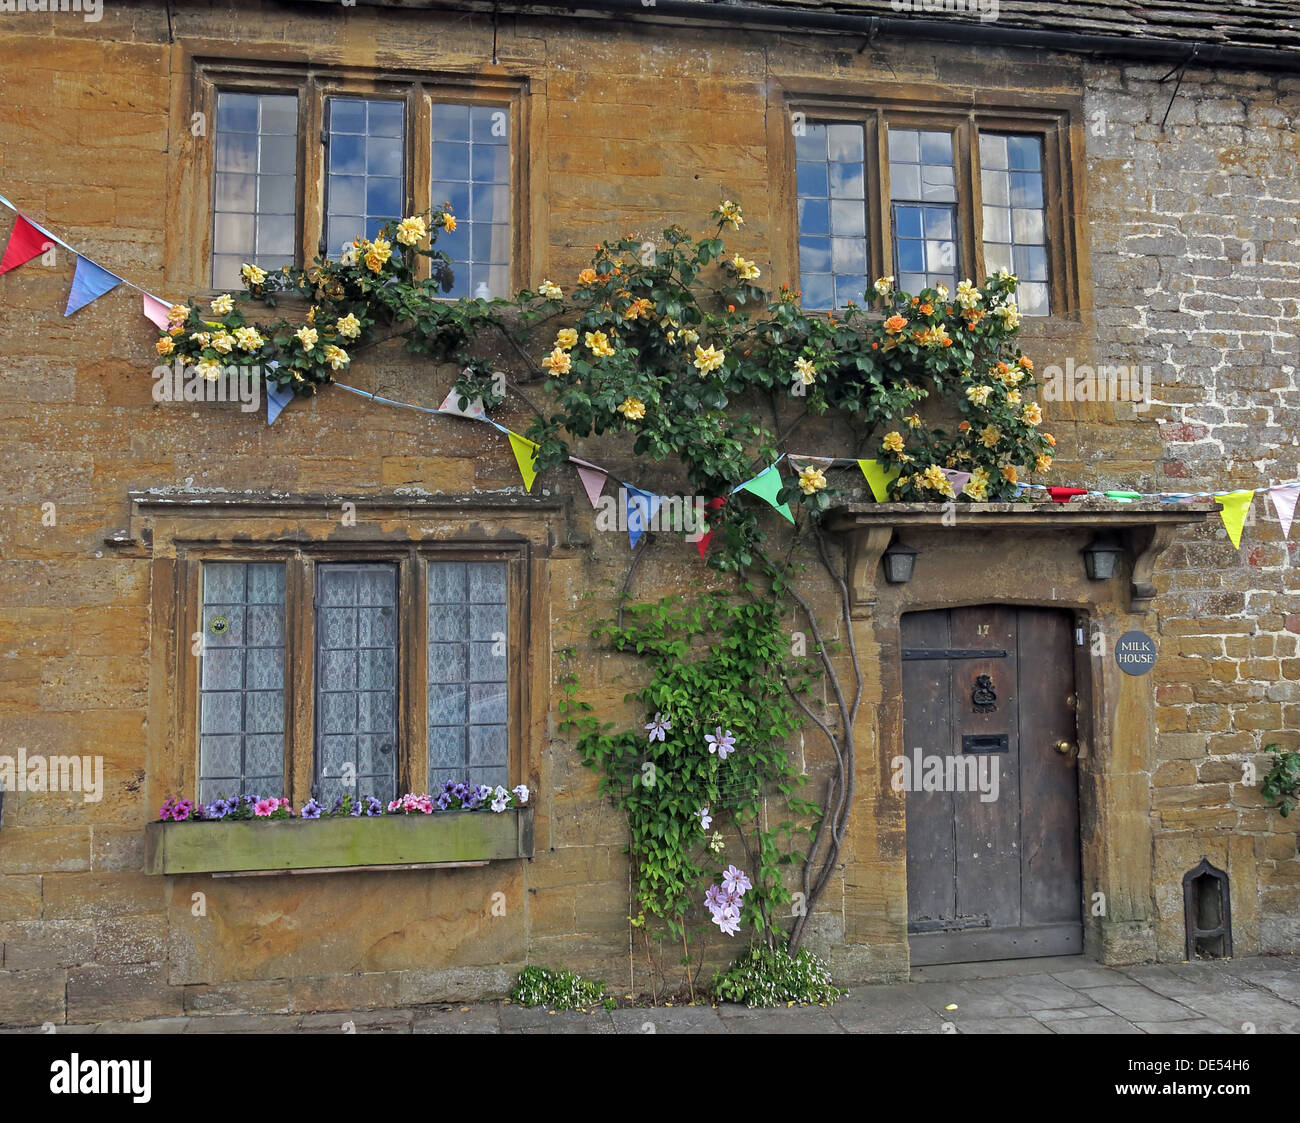 stone,building,buidings,old,olde,ros,flowers,on,front,of,history,historic,NT,National,trust,GB,England,UK,with,climbing,roses,Cottage,Milkhouse,Milk,house,home,Borough,Flowers on building,Flowers on house,Roses on house,Climbing Rose,South Somerset,The Borough,GoTonySmith,@HotpixUK,windows,door,wood,wooden,wooded,cream,sandstone,sand,stones,windows,Buy Pictures of,Buy Images Of,Images of,Stock Images,old door,Climbing Roses